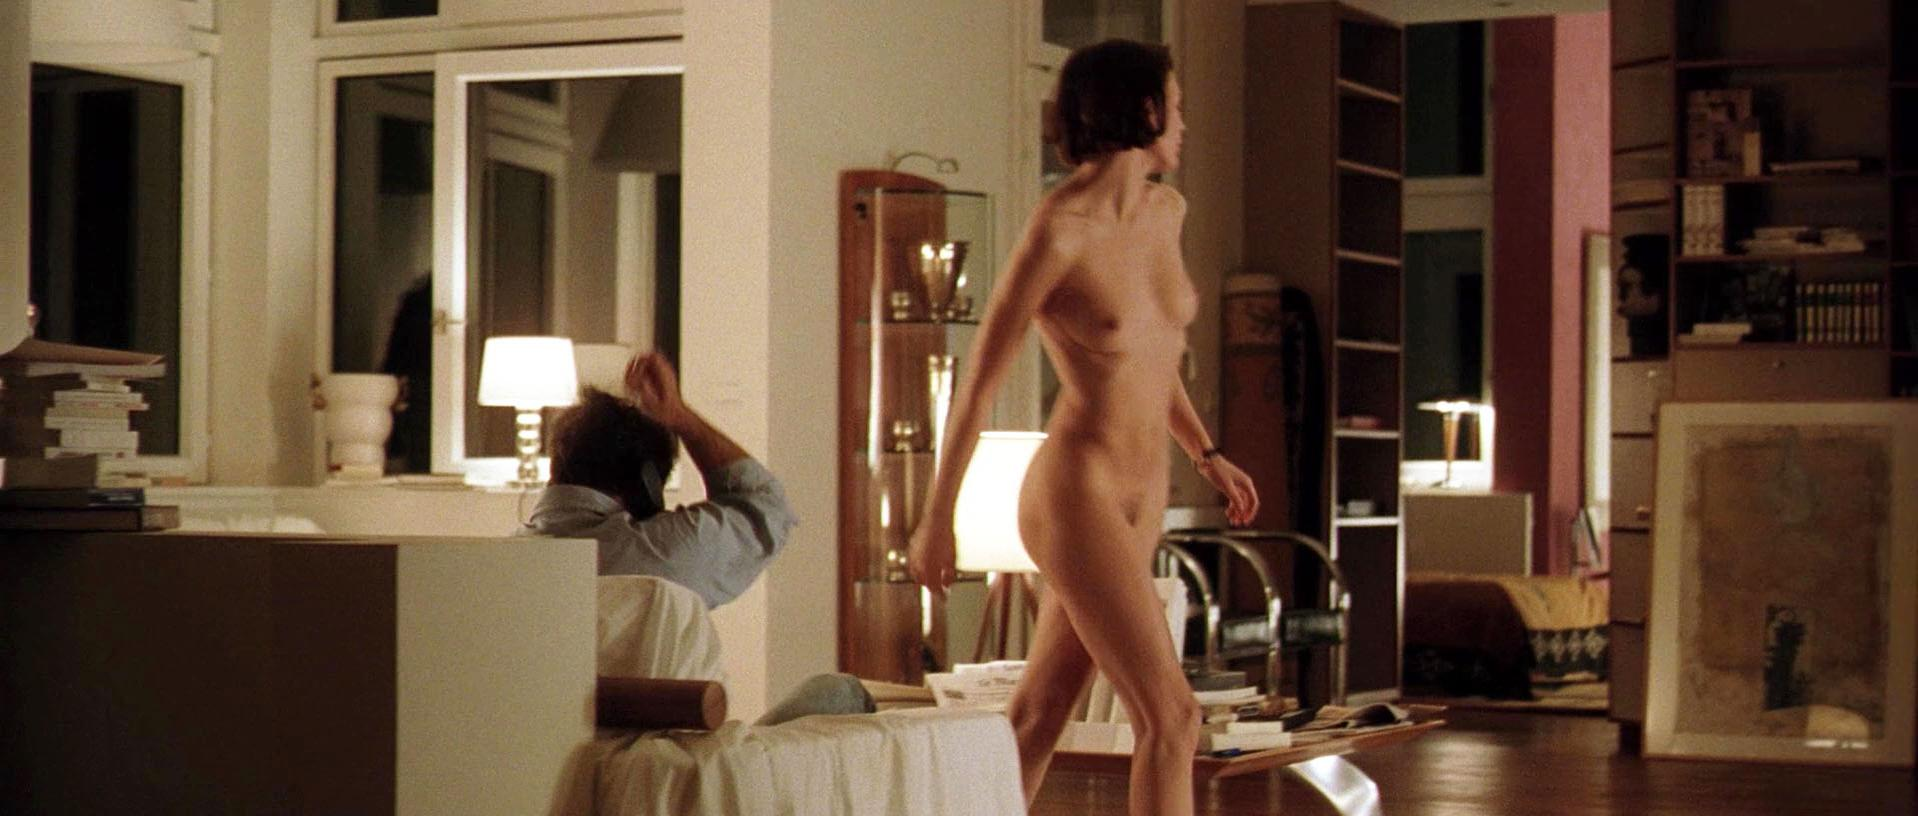 Sophie Aubry nude - Keep It Quiet (1999)